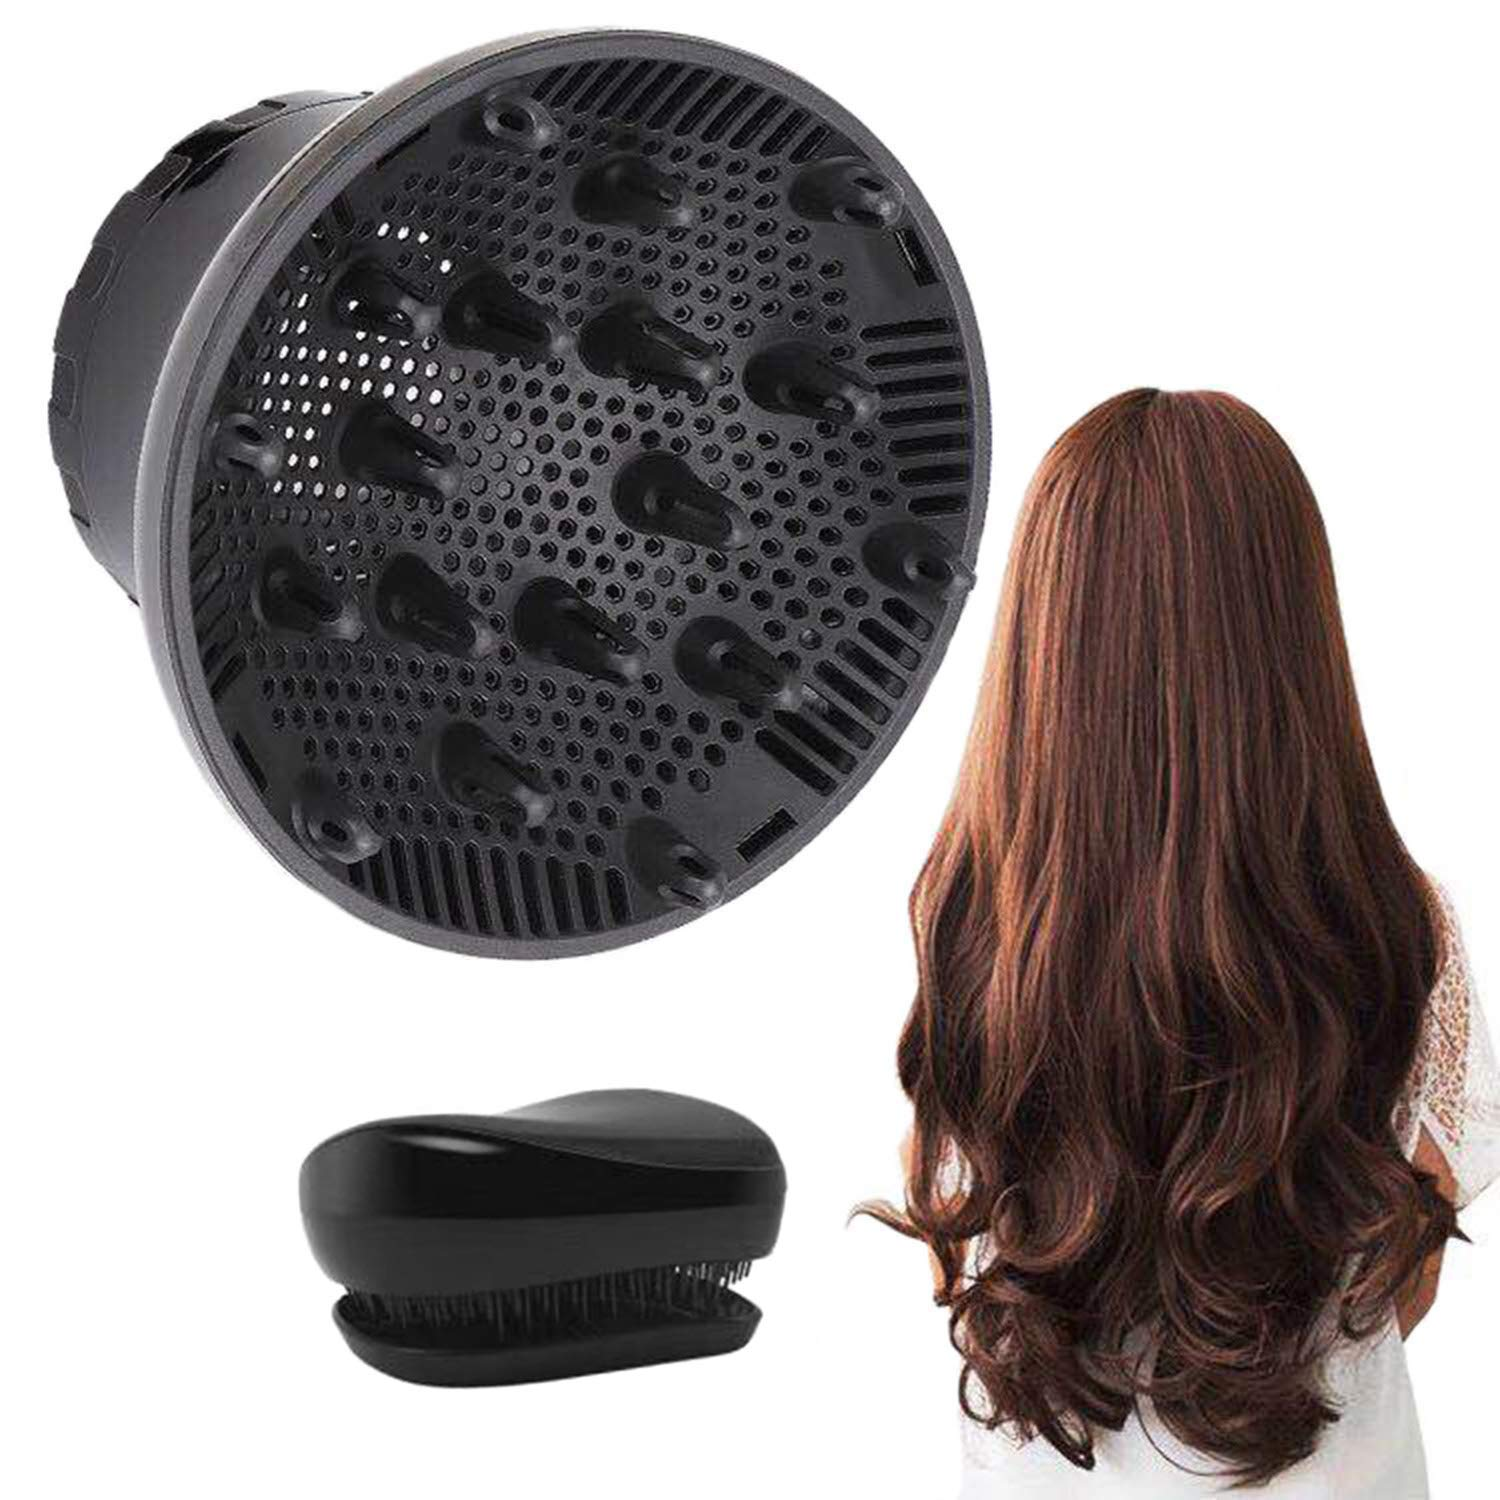 Hair Diffuser, Universal Hair Diffuser Attachment, Hair Dryer Diffuser Suitable for 1.4-inch to 2.6-inch Blow Dry, Professional Salon Tool for Fine Thick Curly Frizzy and Wavy Hair (Black) by SNAHIKE